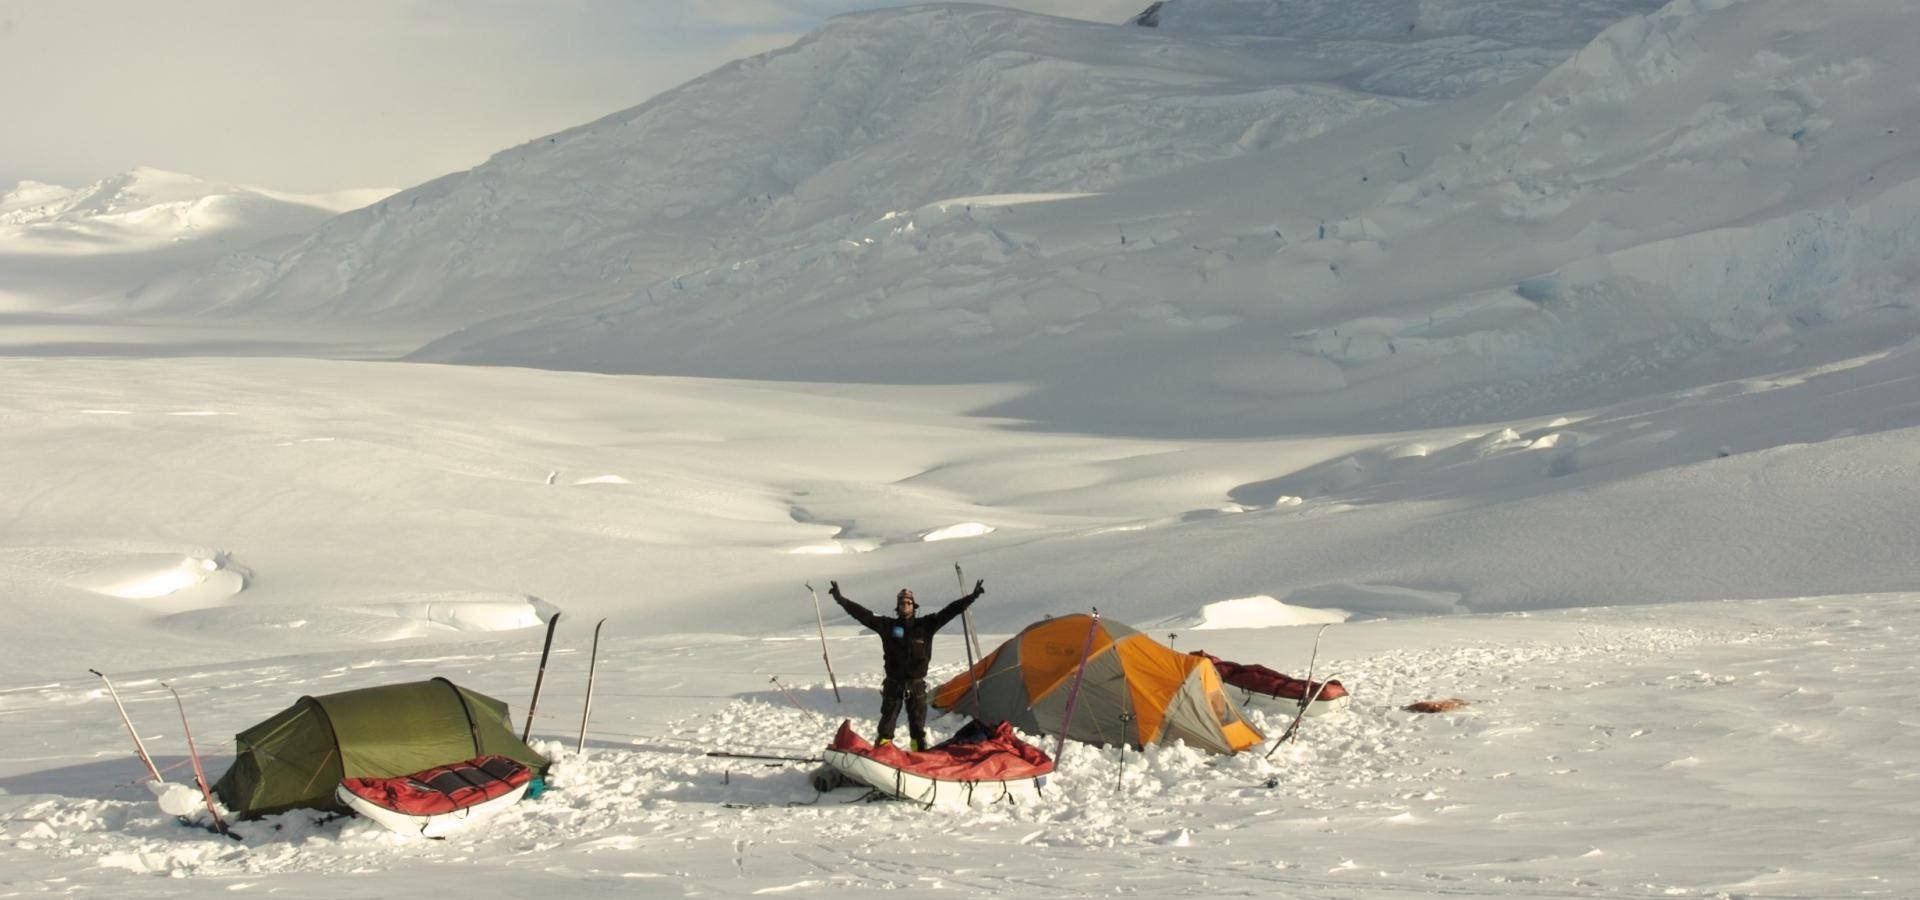 Four expeditions to the South Pole